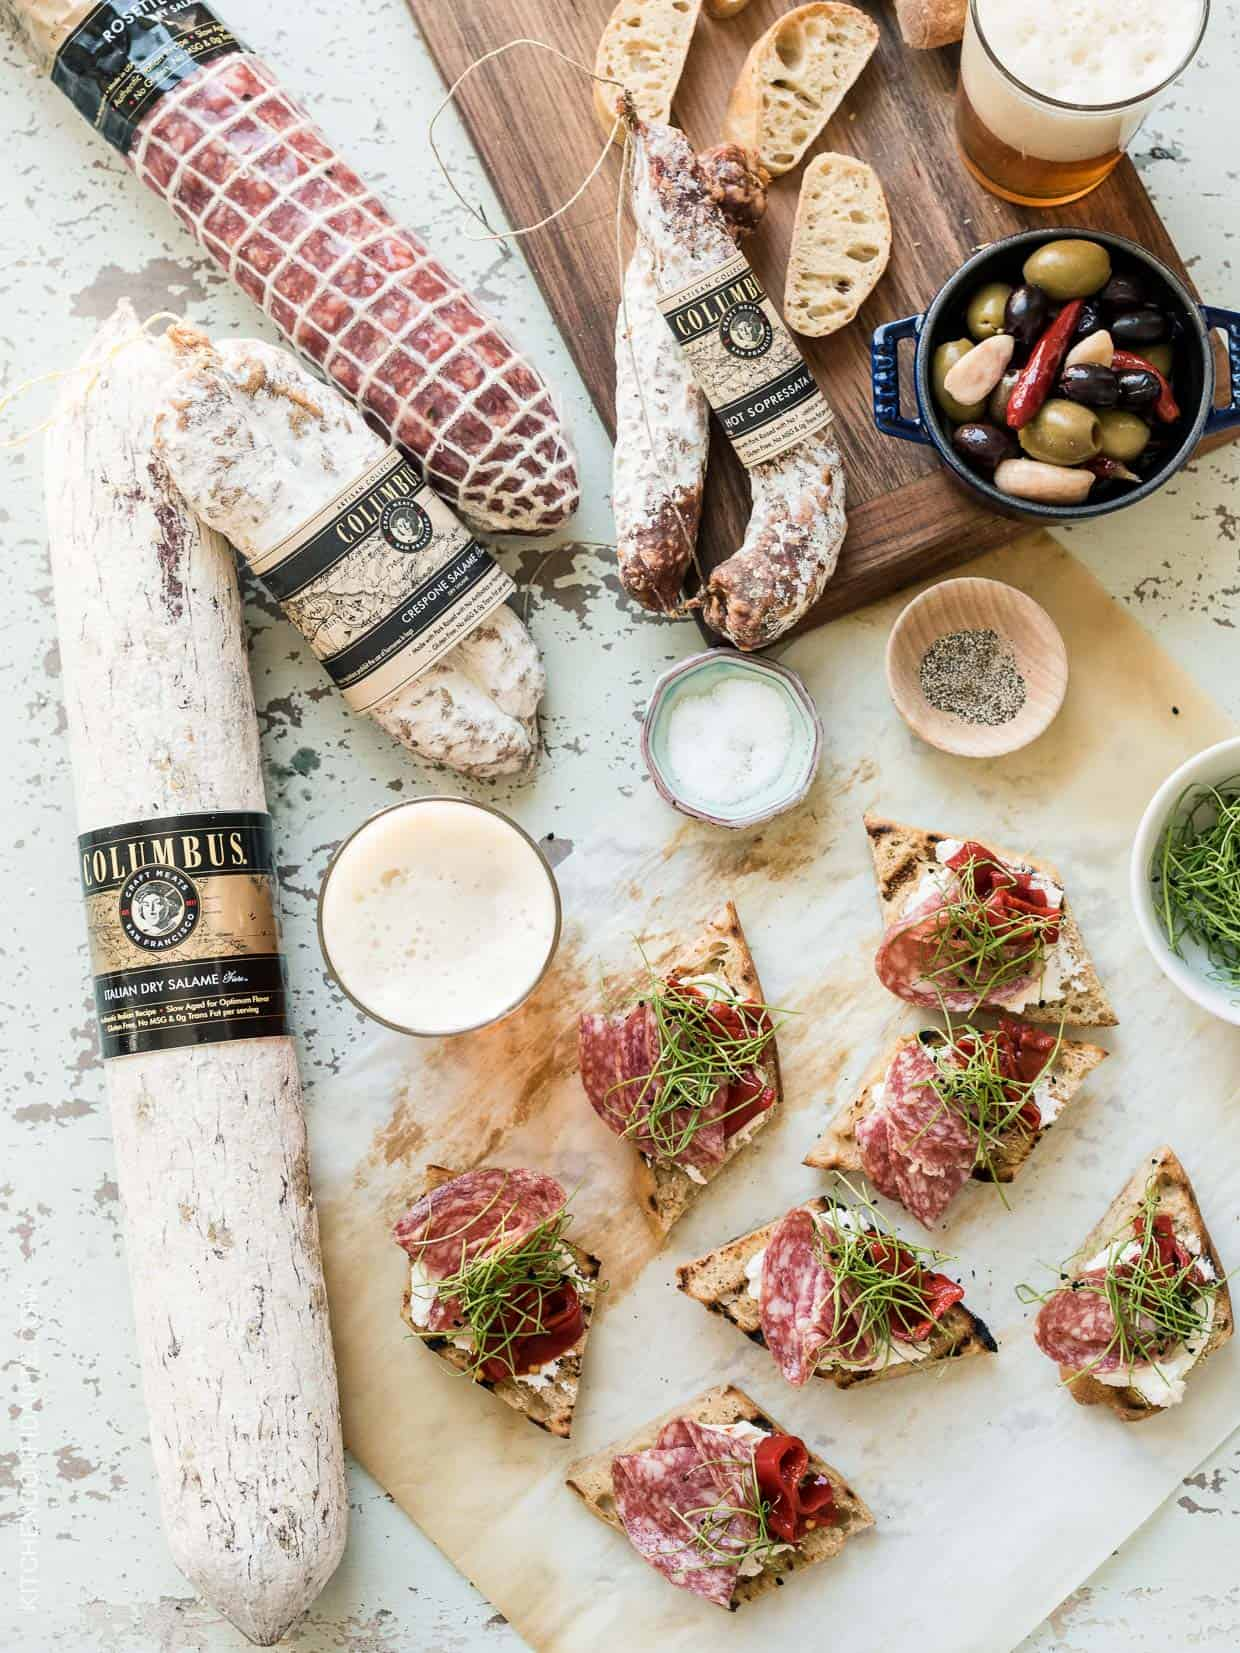 Beer Bread Bruschetta with Salami - summer ease, all washed down with craft beer!